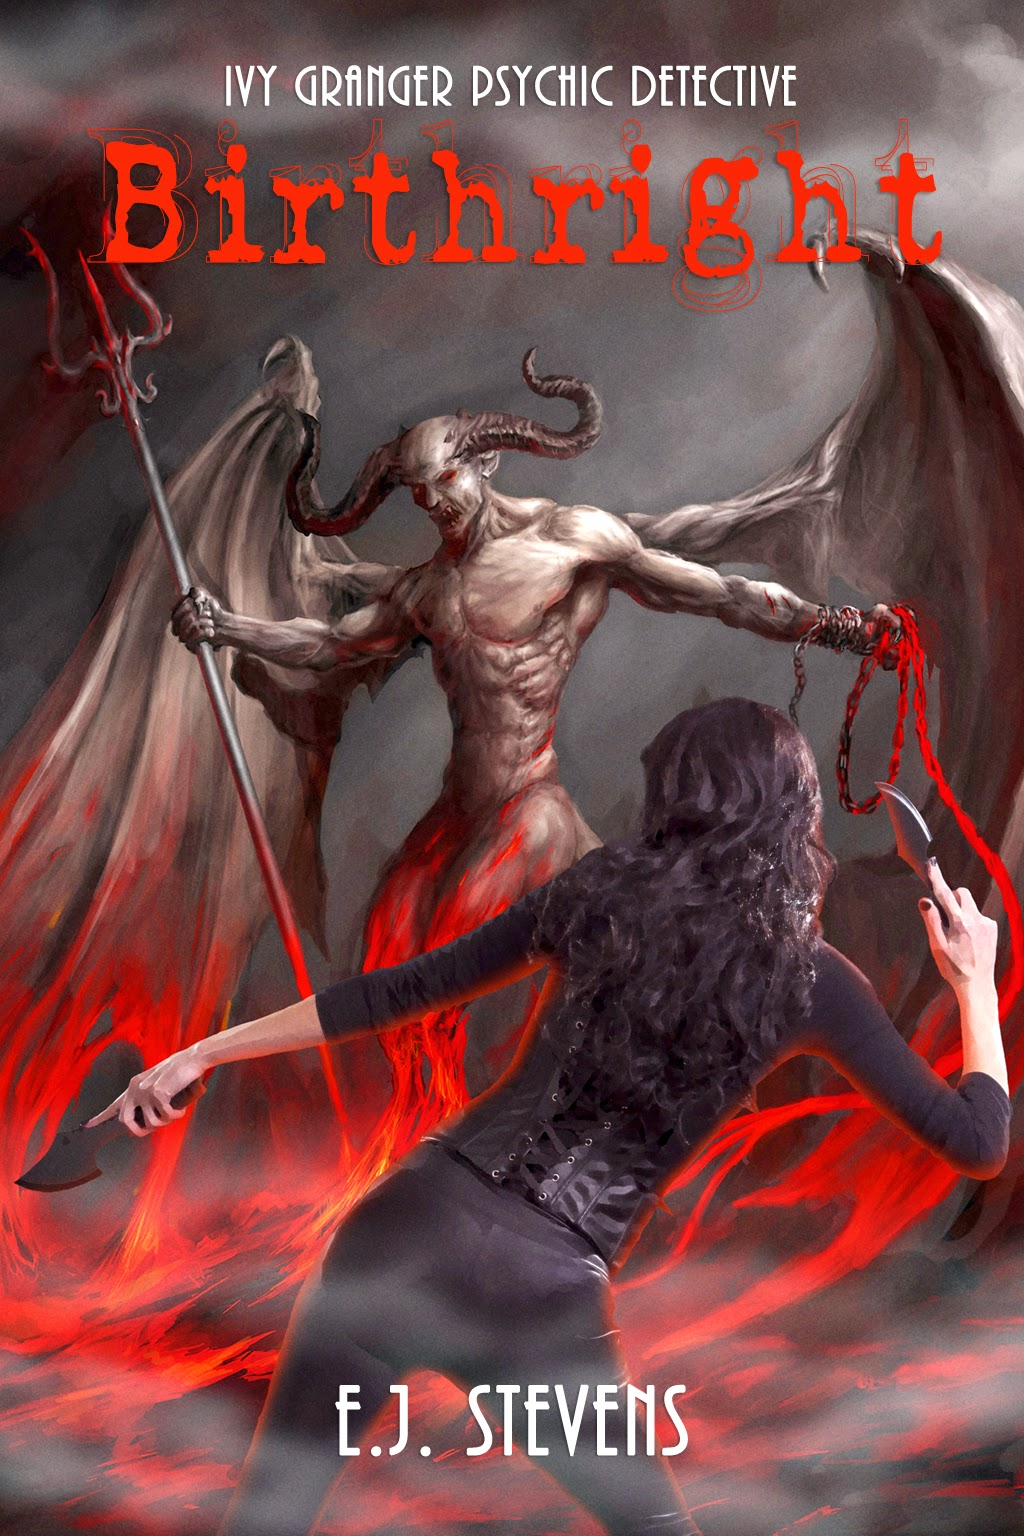 Cover Reveal Birthright by E.J. Stevens an Ivy Granger Urban Fantasy Novel